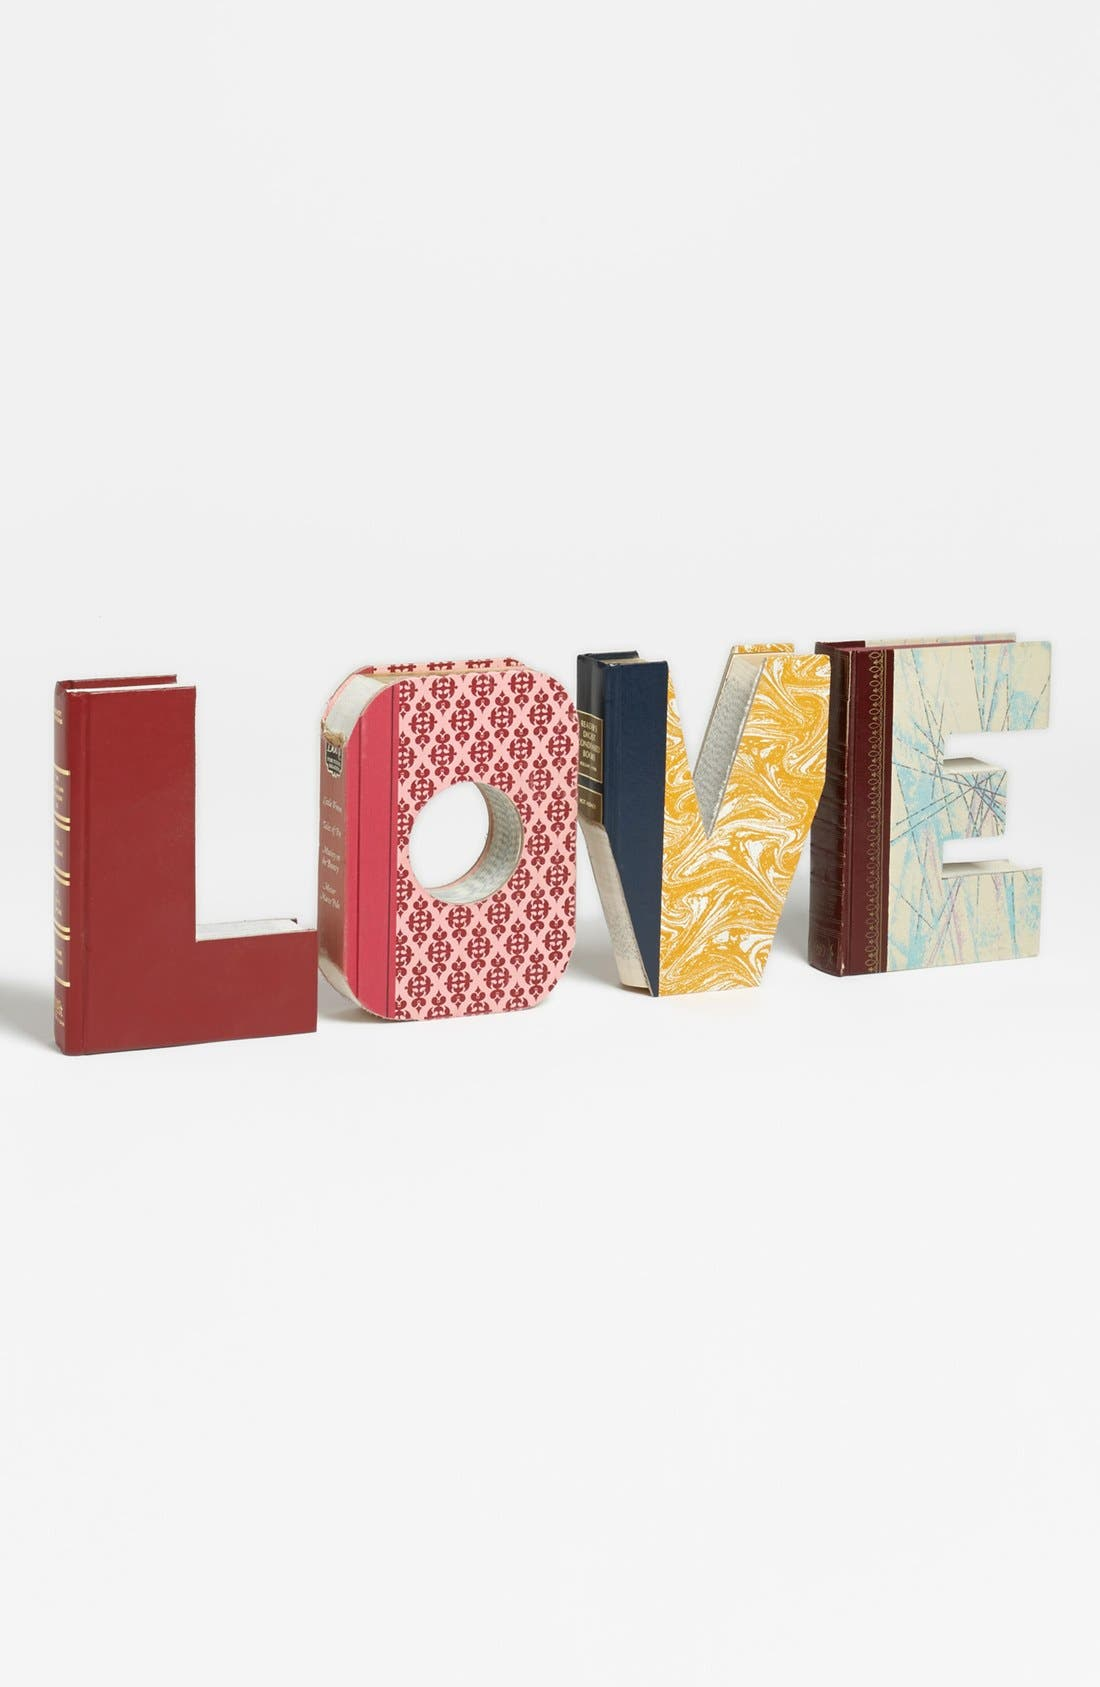 Alternate Image 1 Selected - Second Nature by Hand 'Love - One of a Kind' Hand-Carved Recycled Book Shelf Art